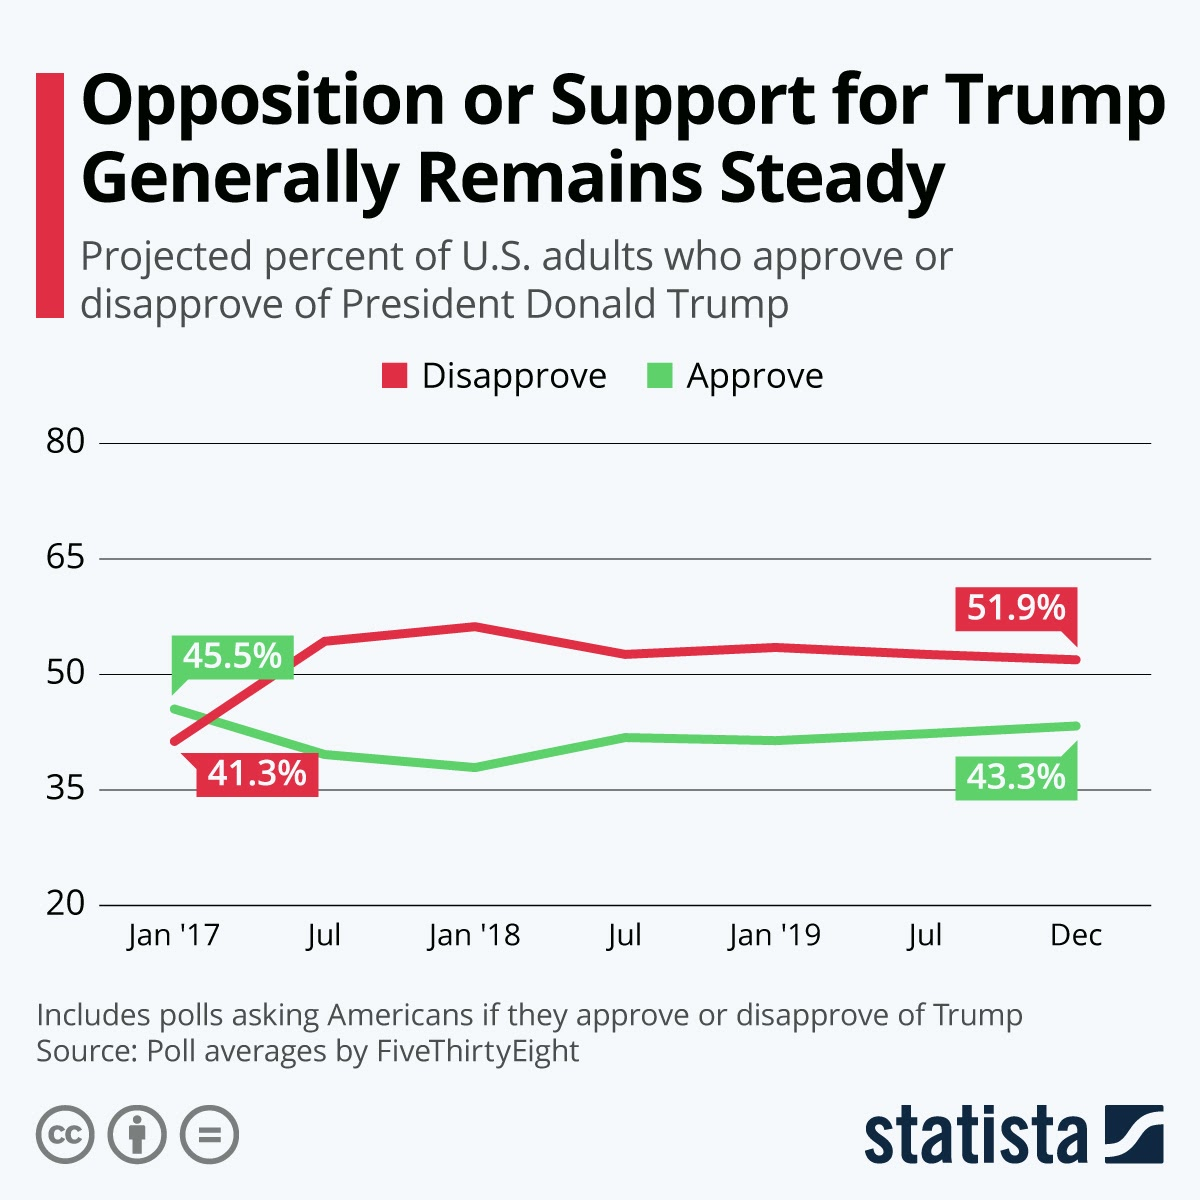 support-for-trump-continues #infographic